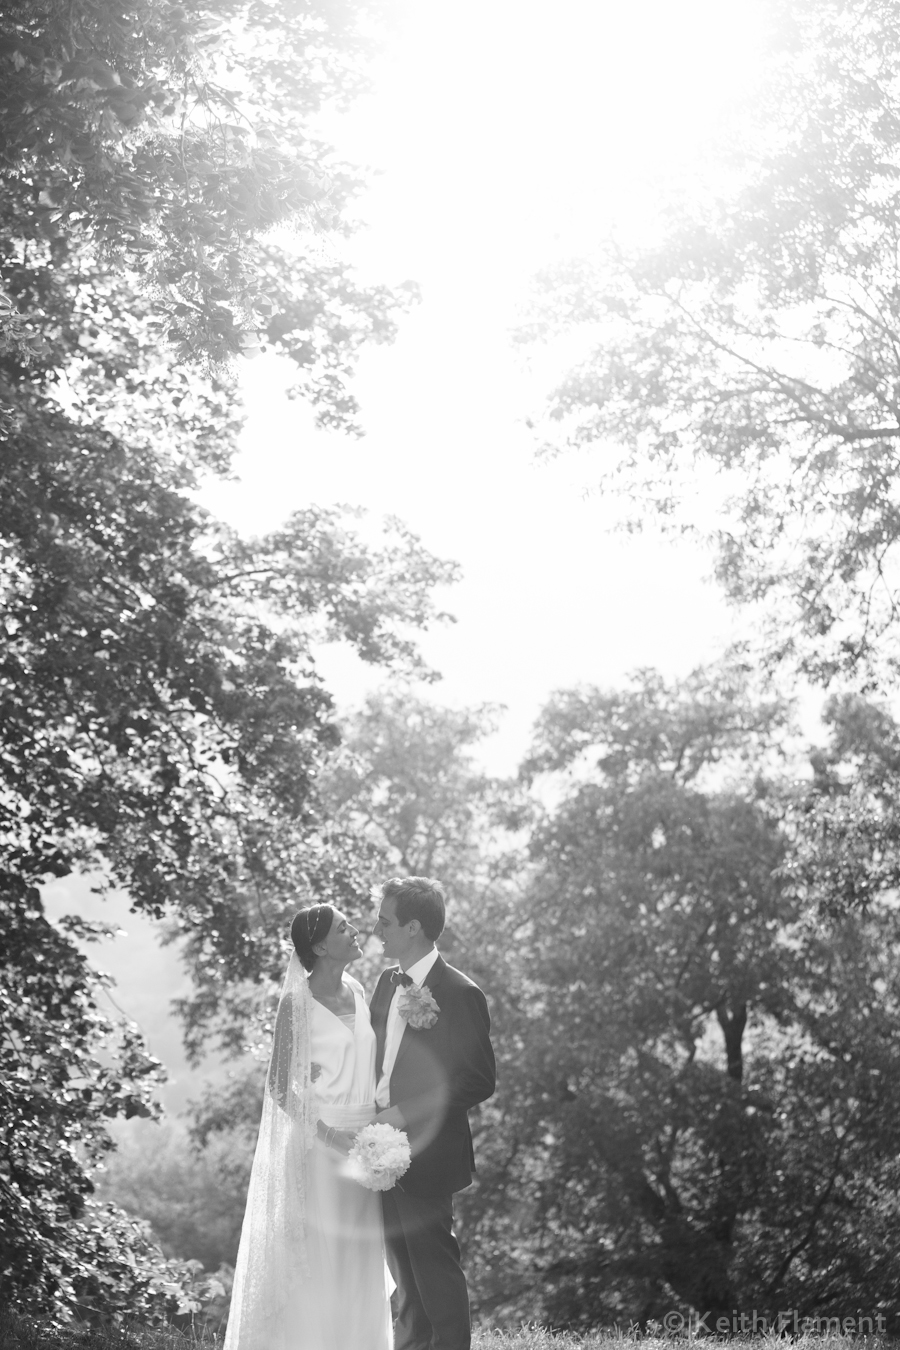 keith-flament-photographe-reportage-mariage-ardèche-130